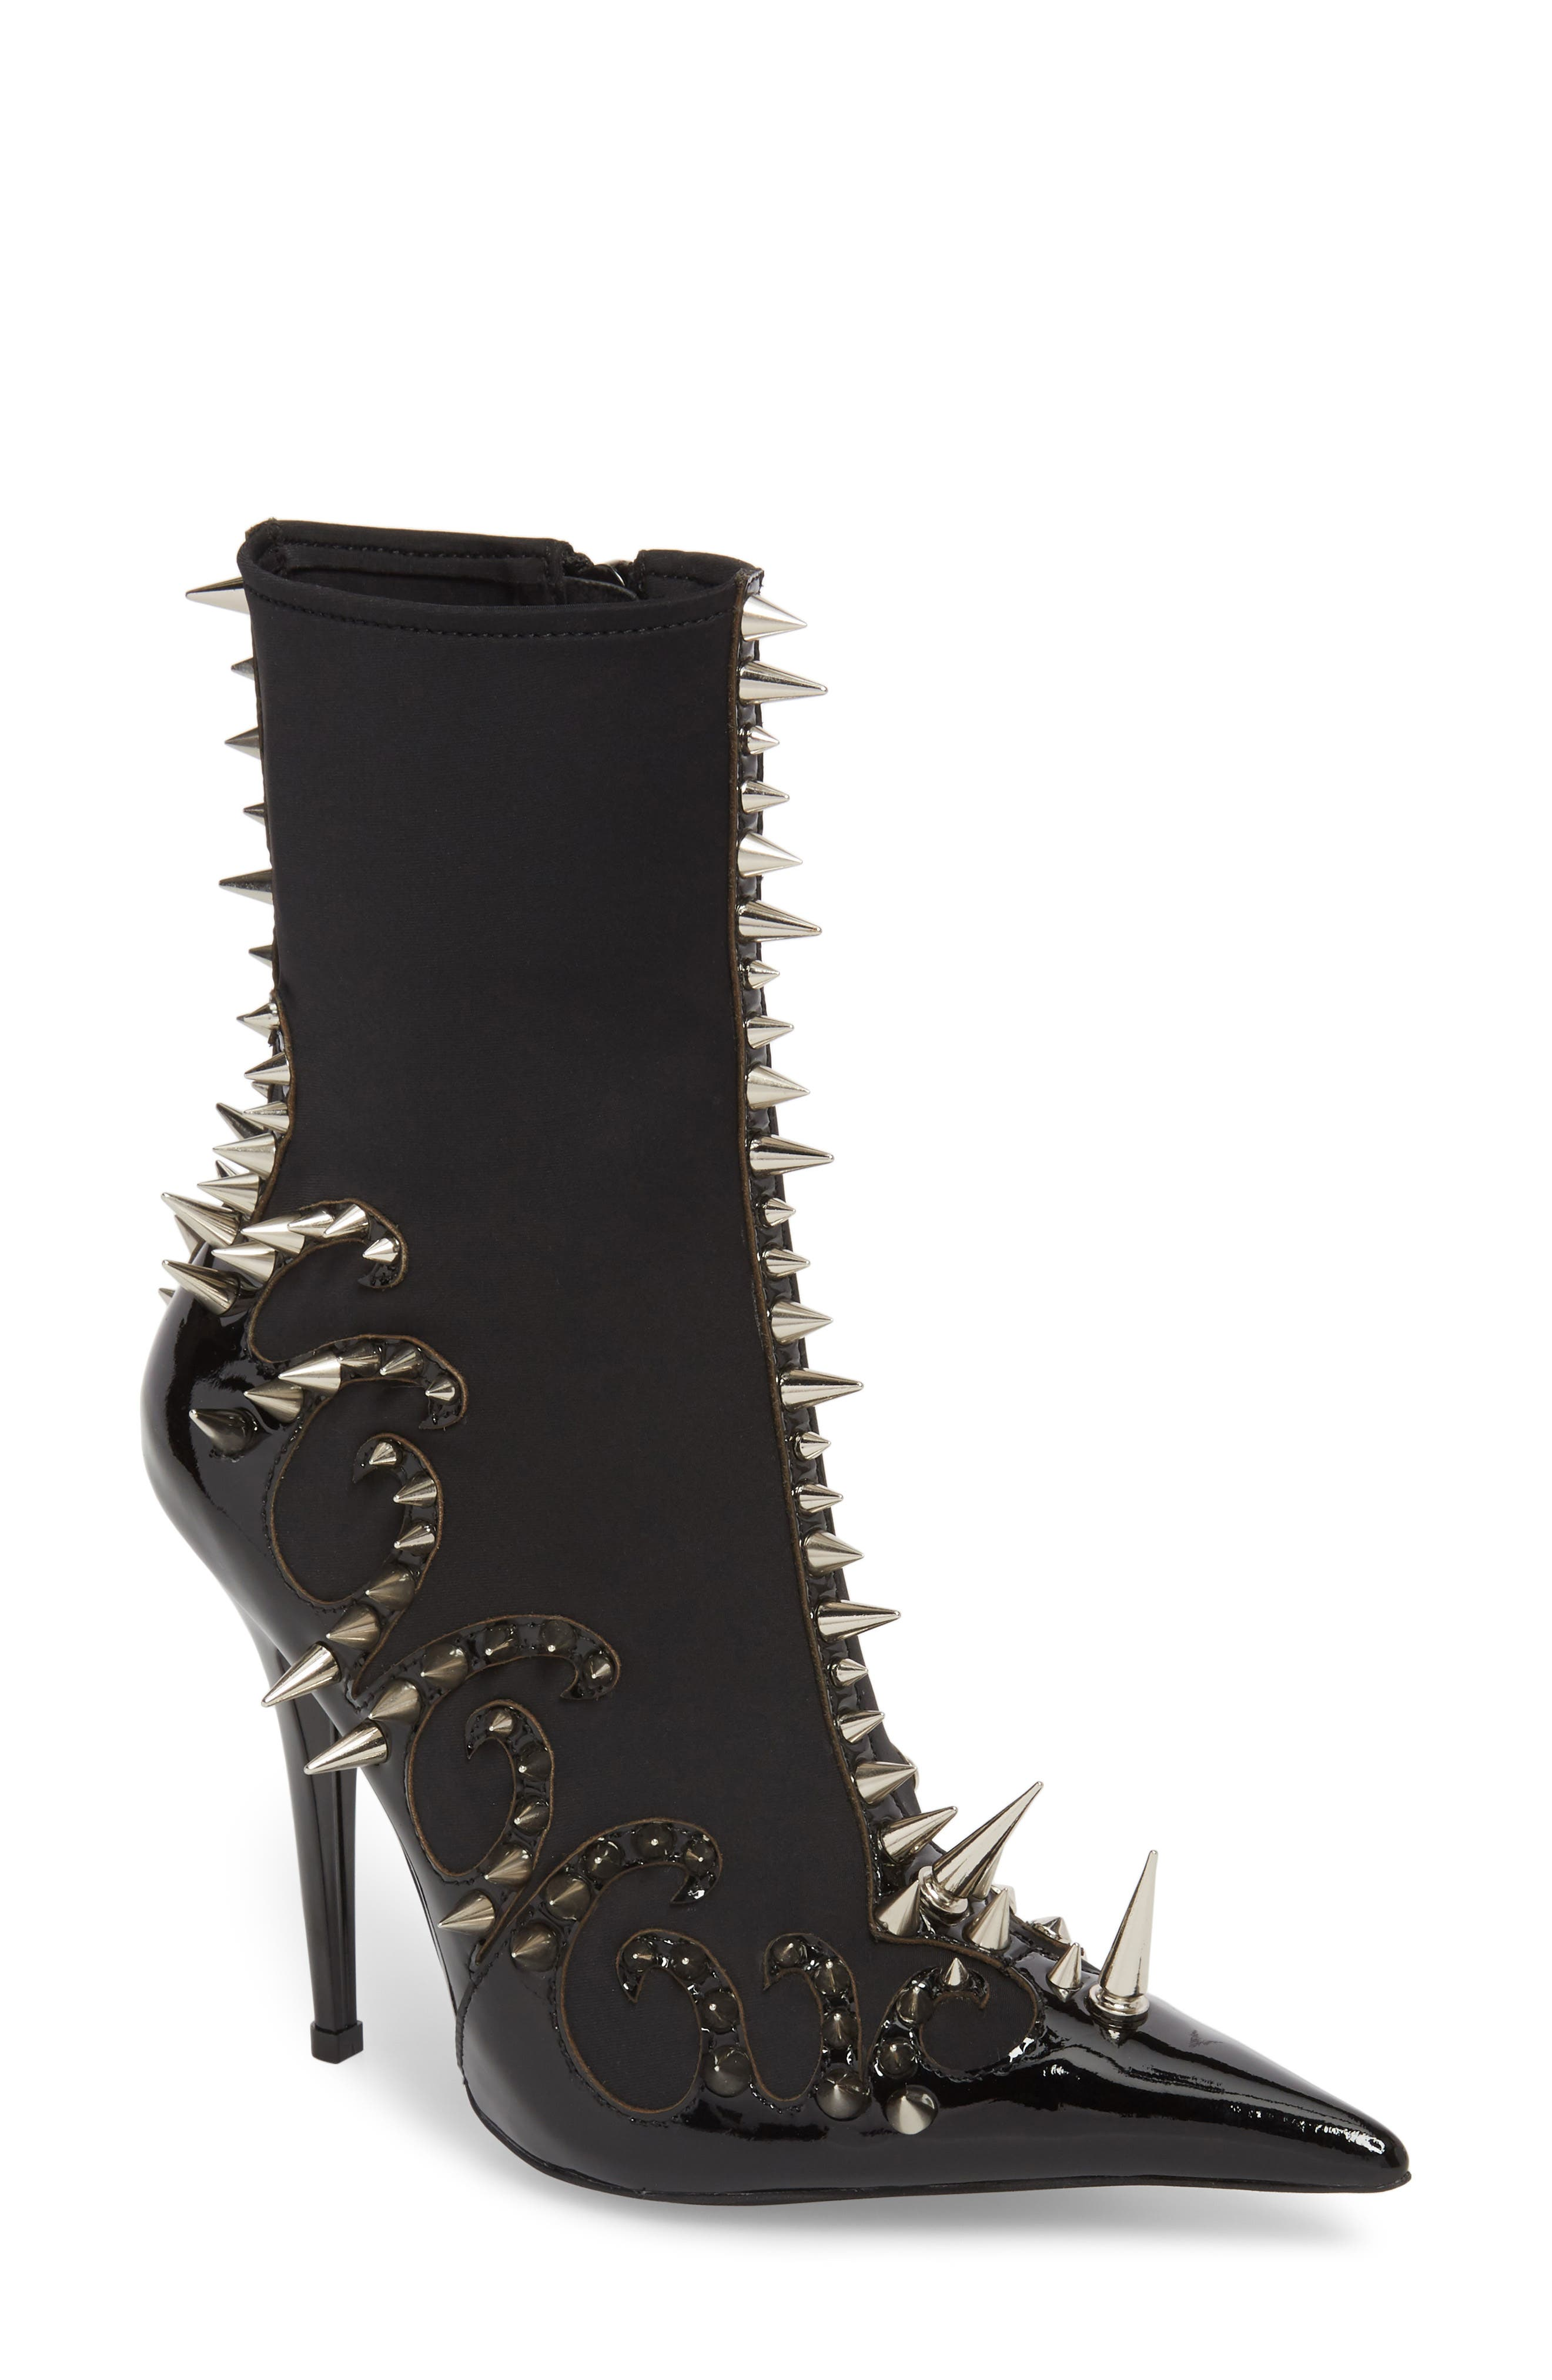 Savage Spike Bootie,                         Main,                         color, Black/ Silver Patent Leather